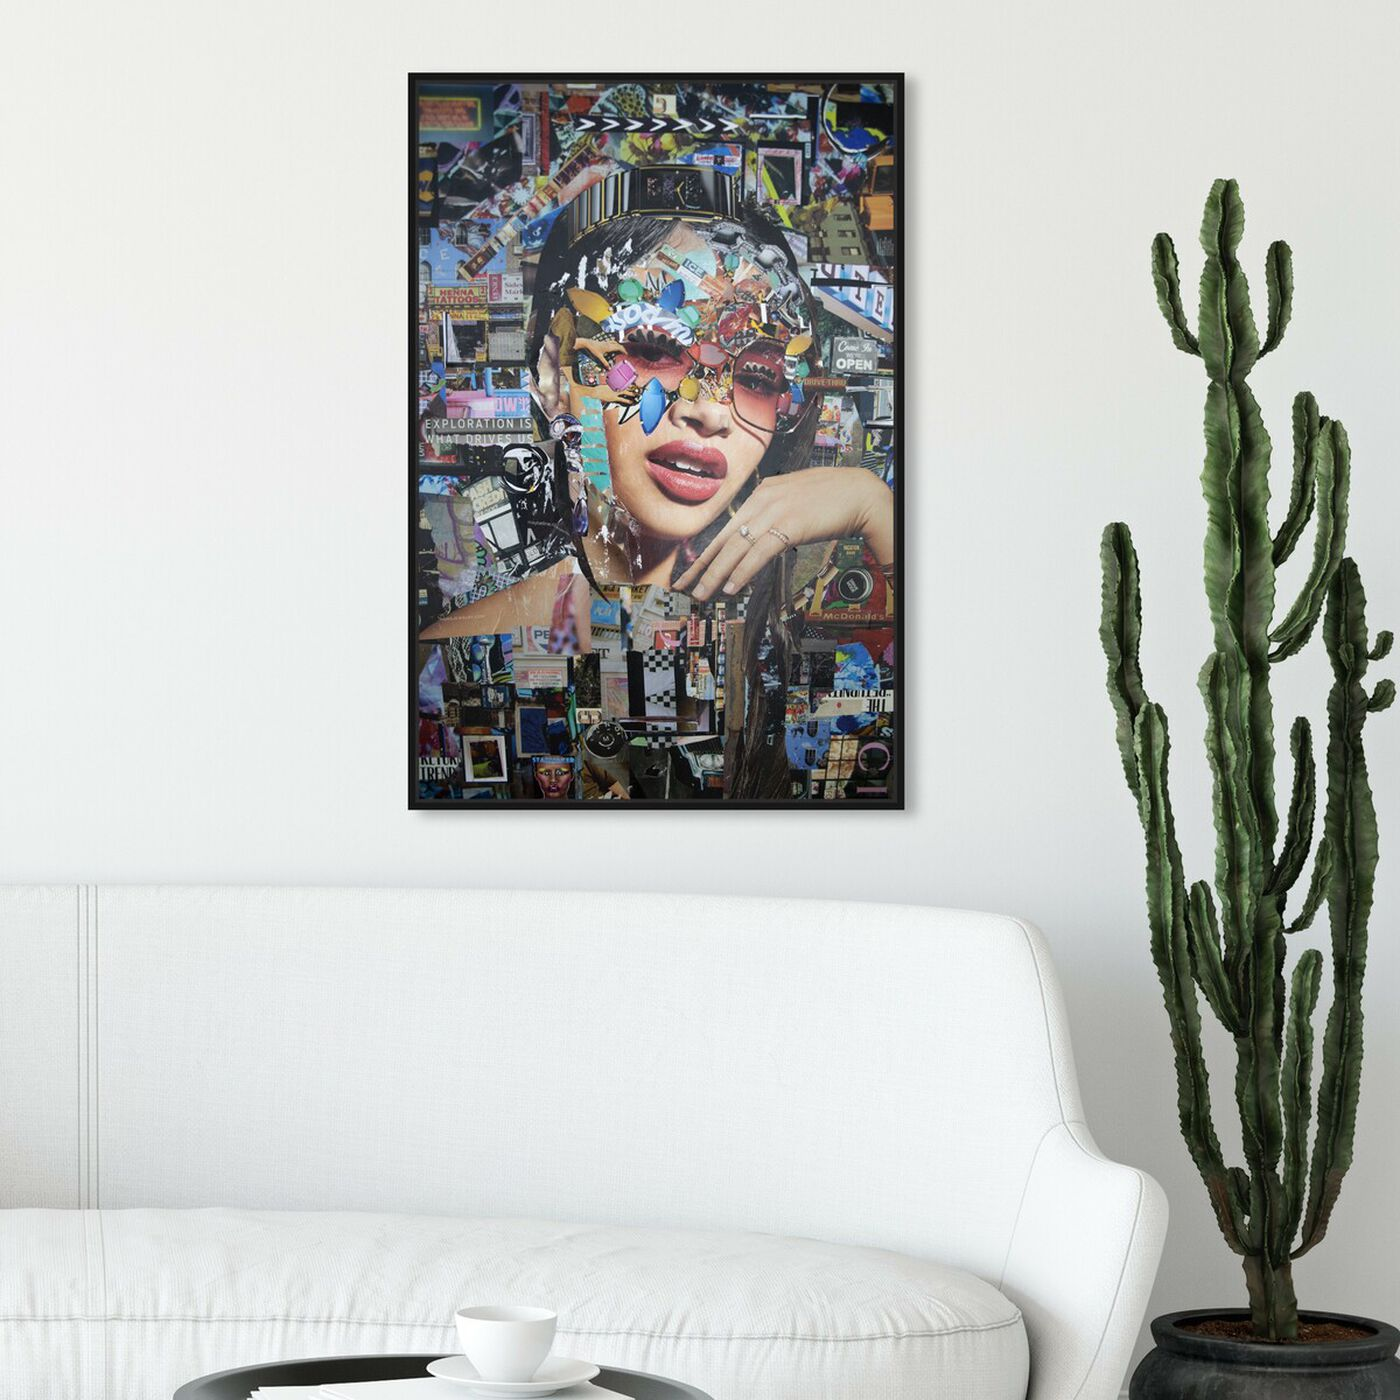 Hanging view of Katy Hirschfeld - Urban Glam Showing featuring fashion and glam and portraits art.